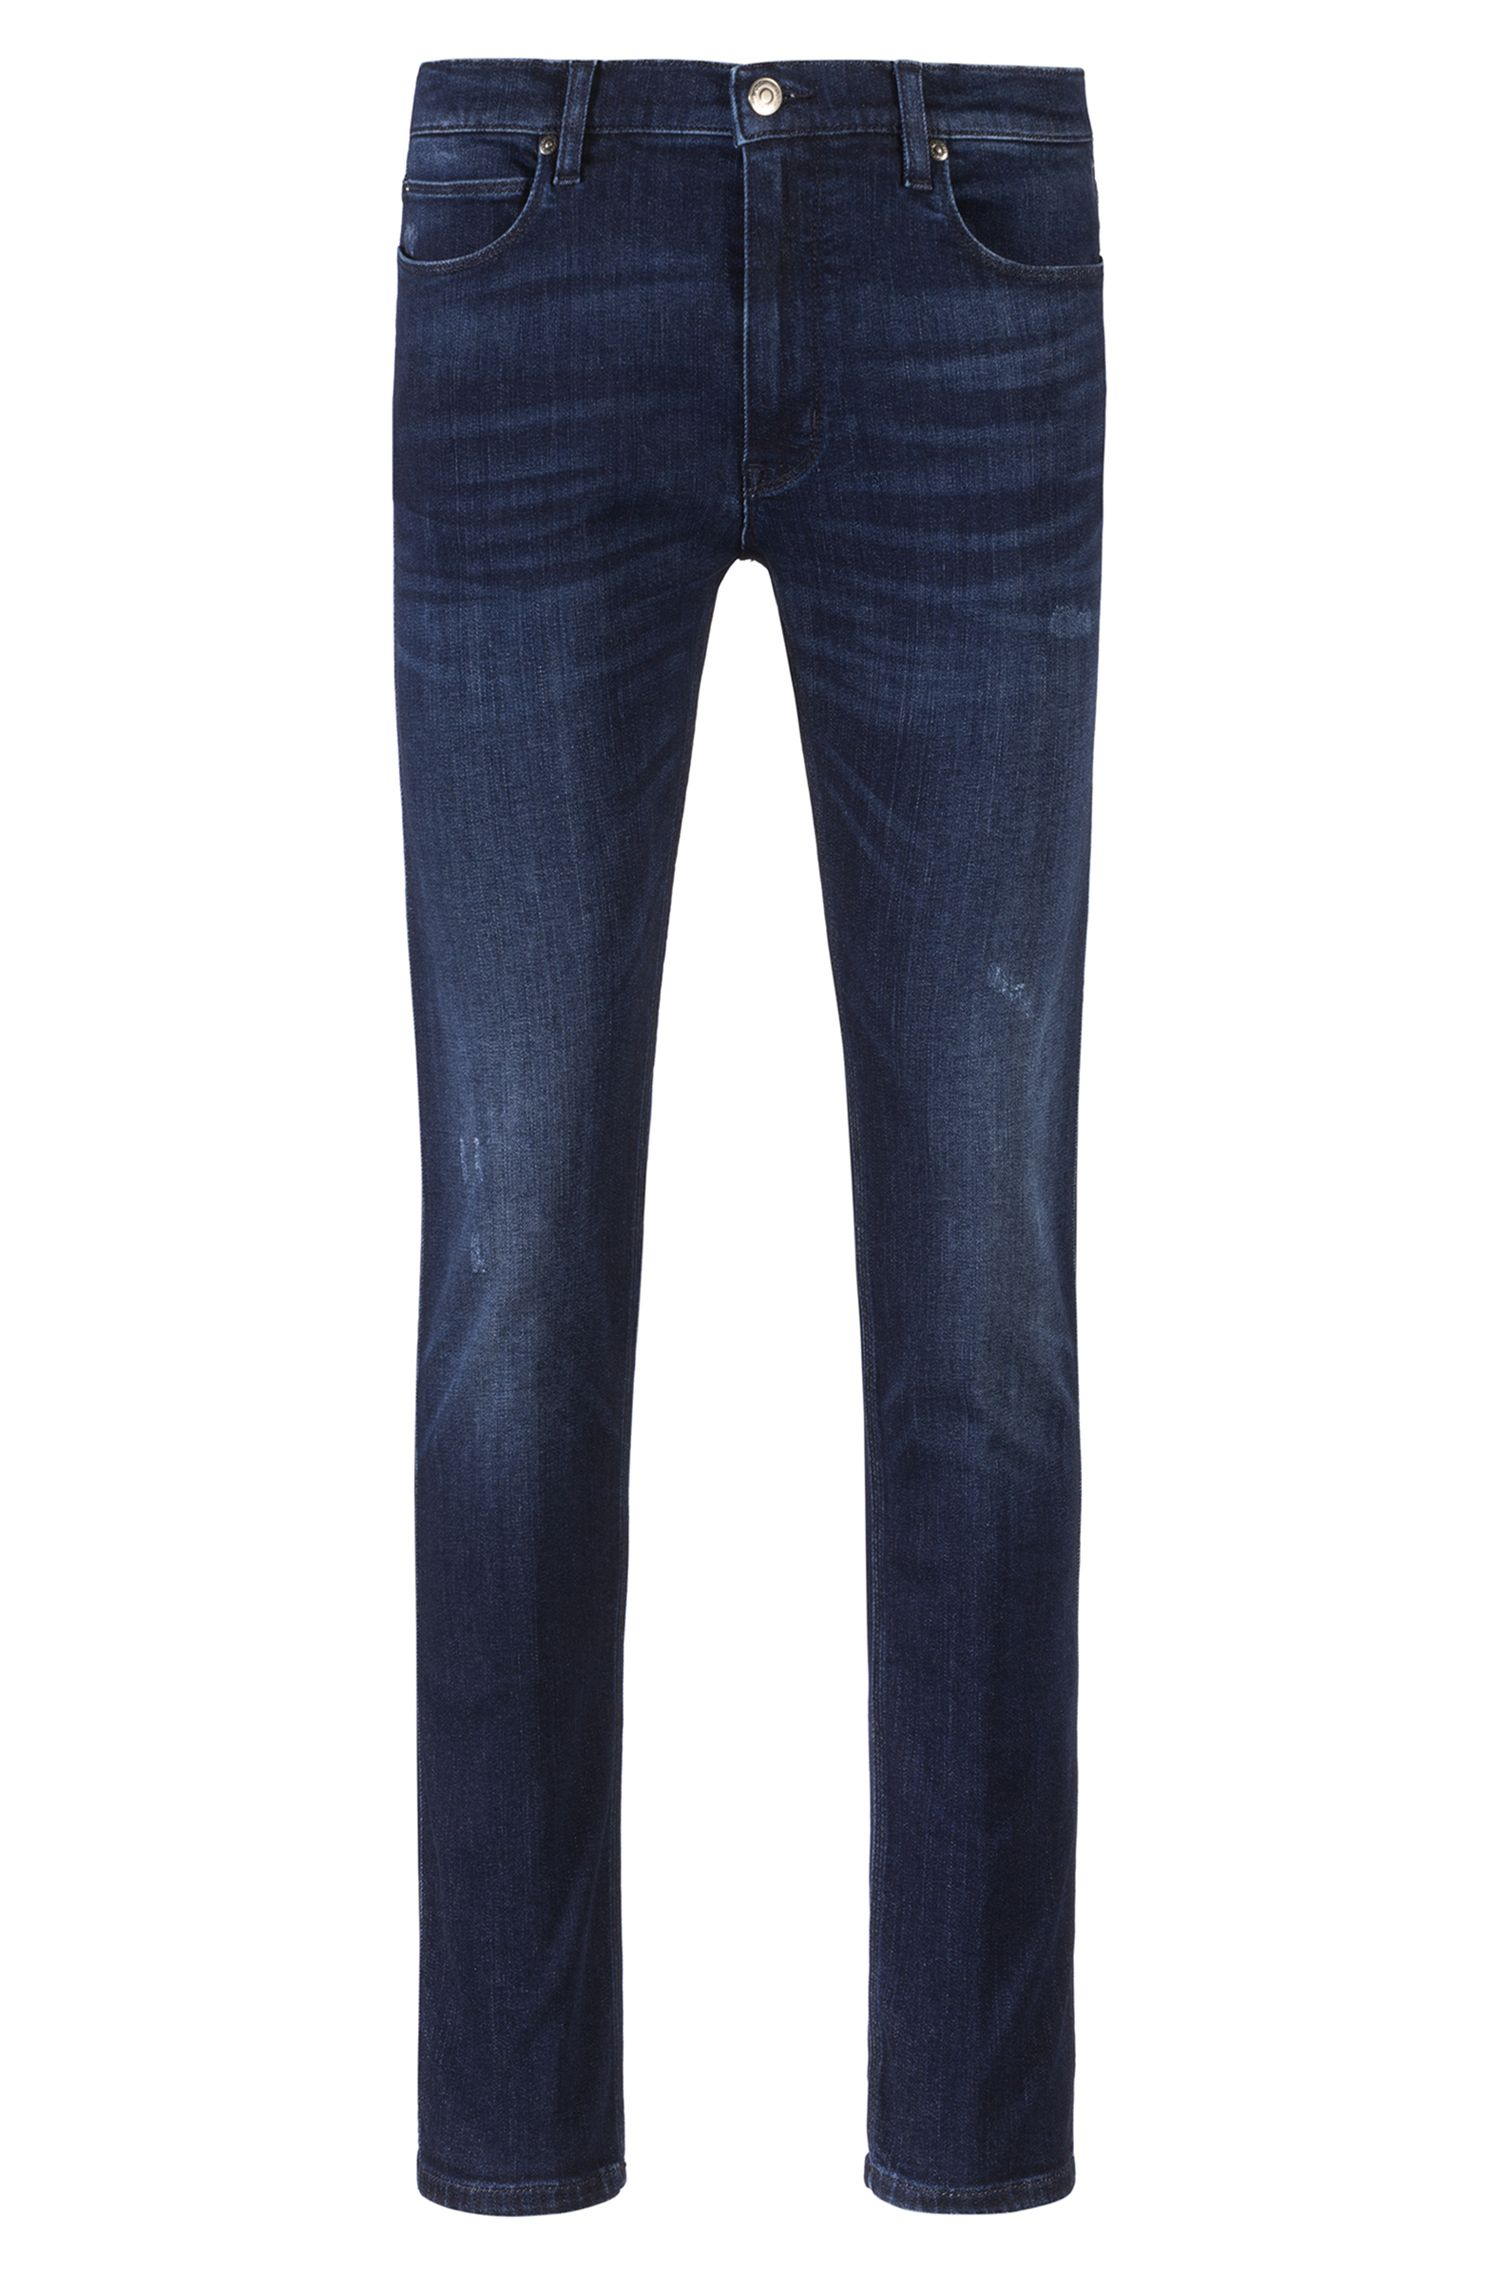 Jean Skinny Fit en denim stretch bleu, Bleu foncé